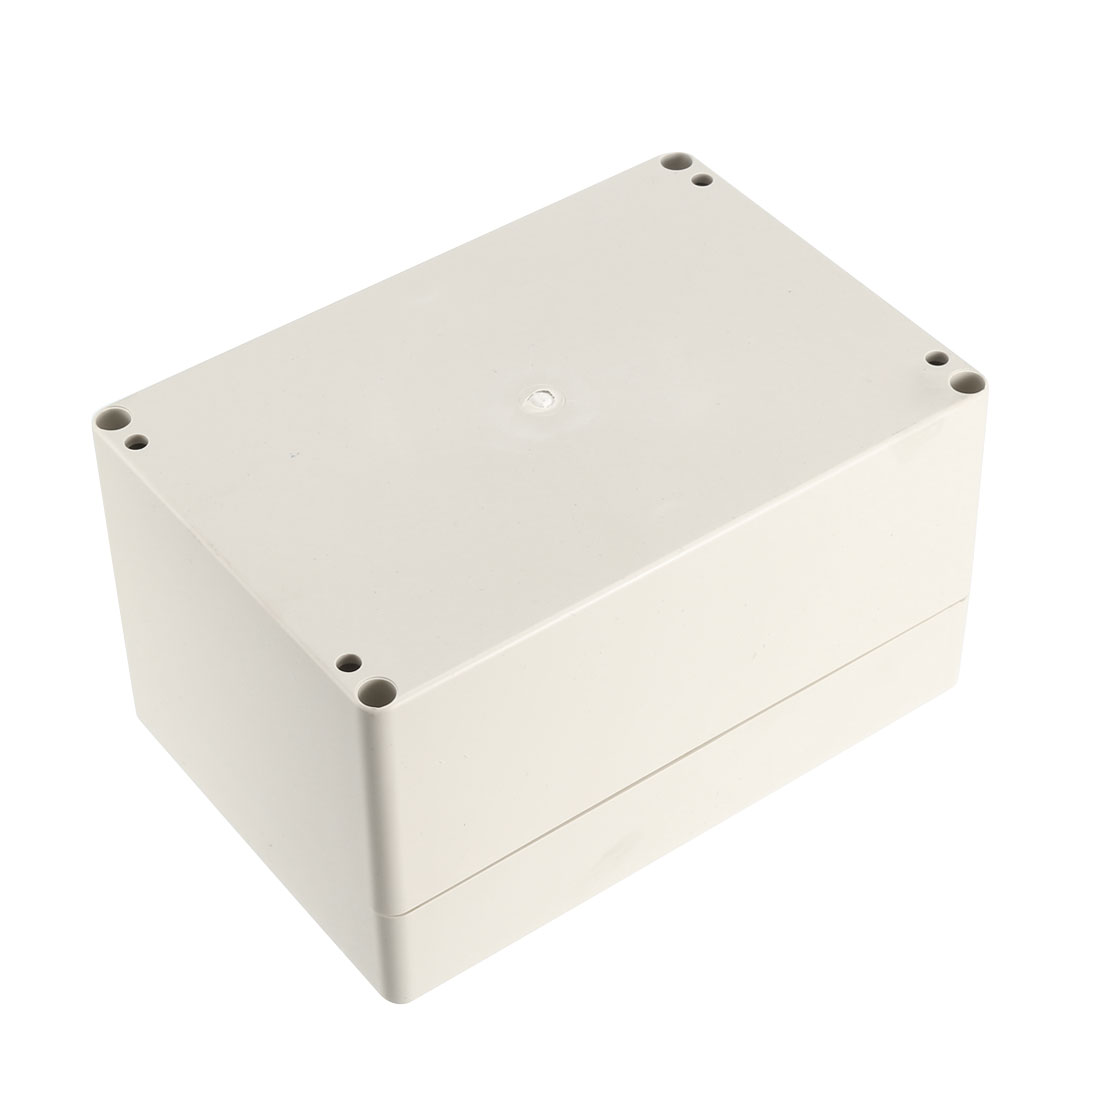 Outdoor Plastic Enclosure Industrial Project Junction Box 160x110x90mm - image 2 of 3